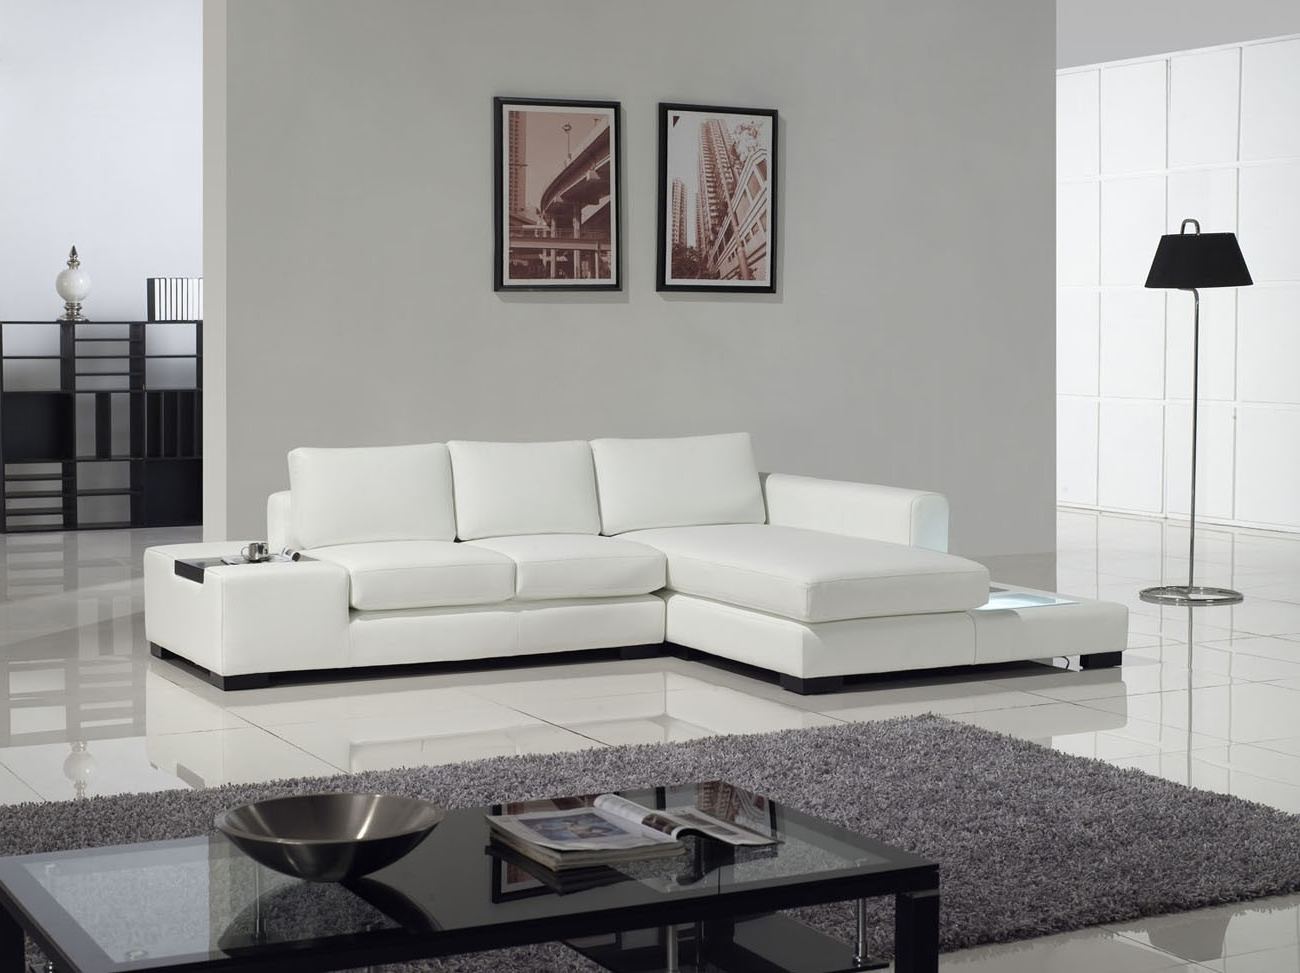 Sectional Sofa Design: Top Rated White Modern Sectional Sofa In Recent White Modern Sofas (View 9 of 15)